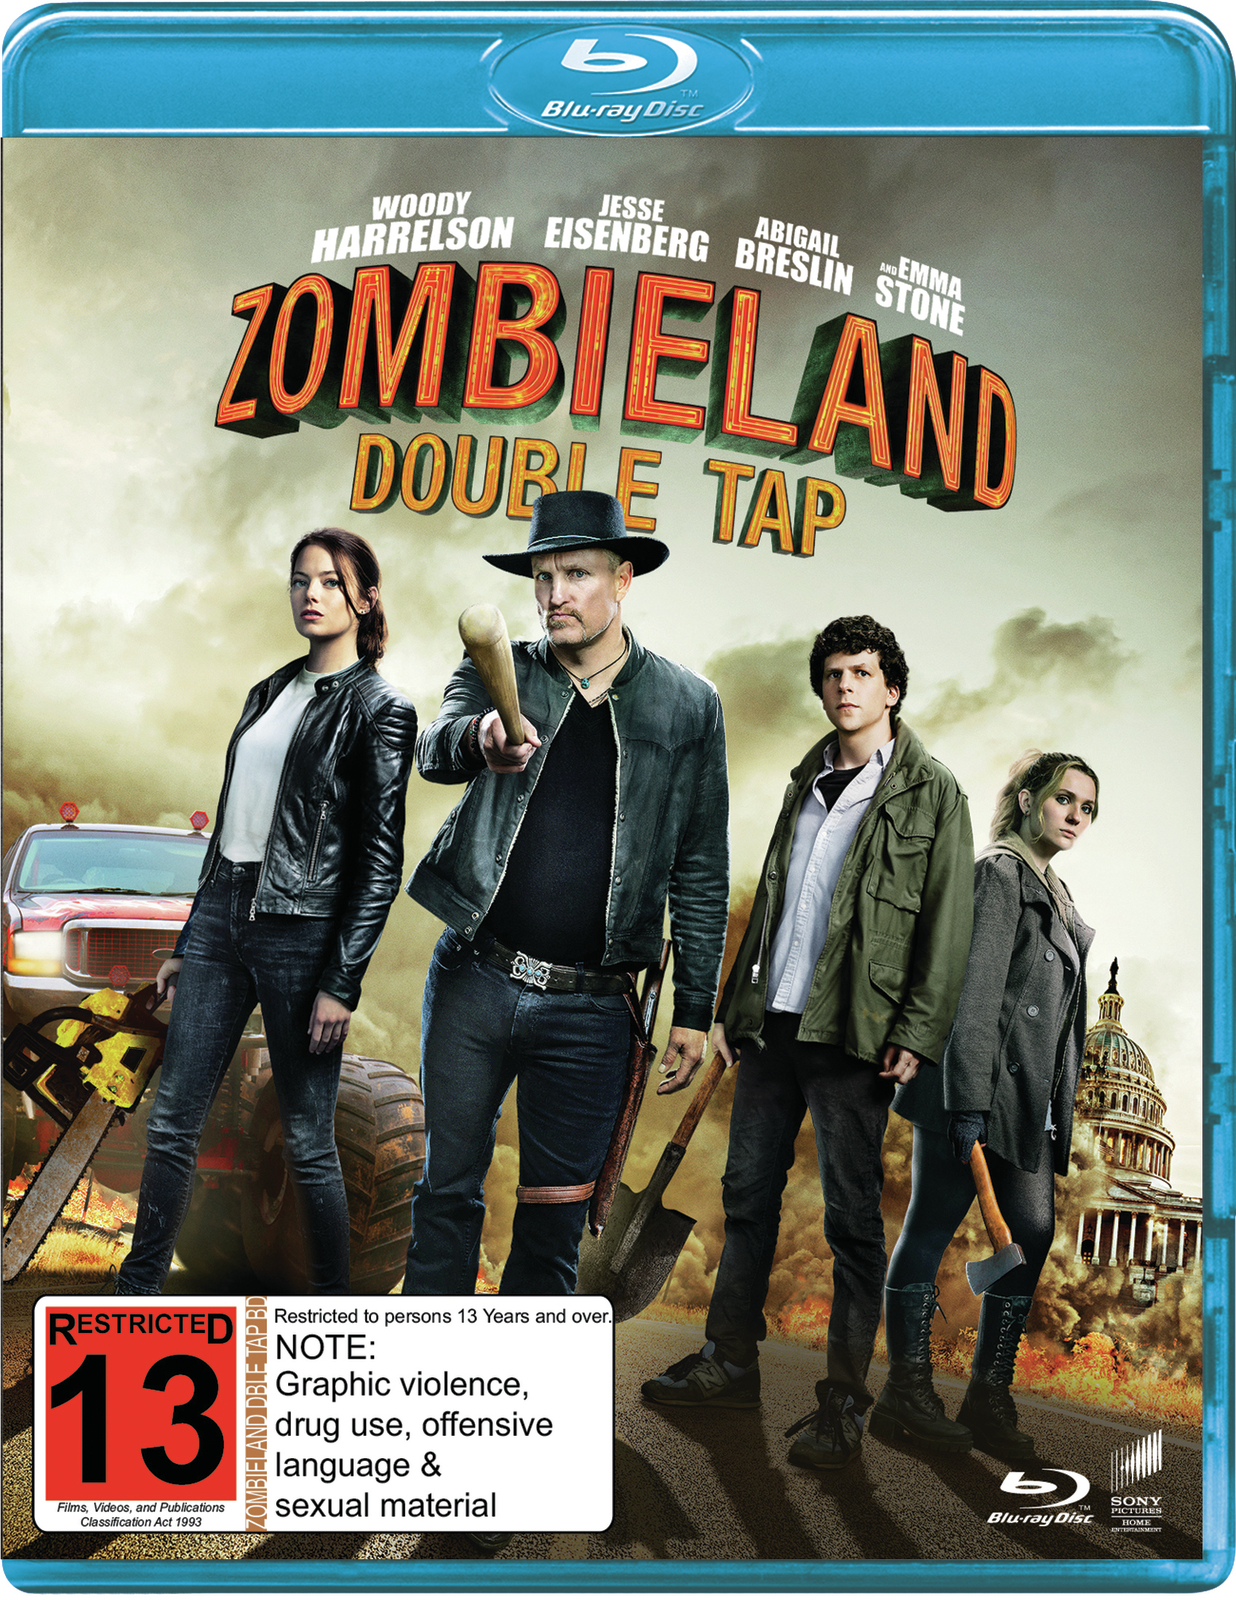 Zombieland: Double Tap on Blu-ray image